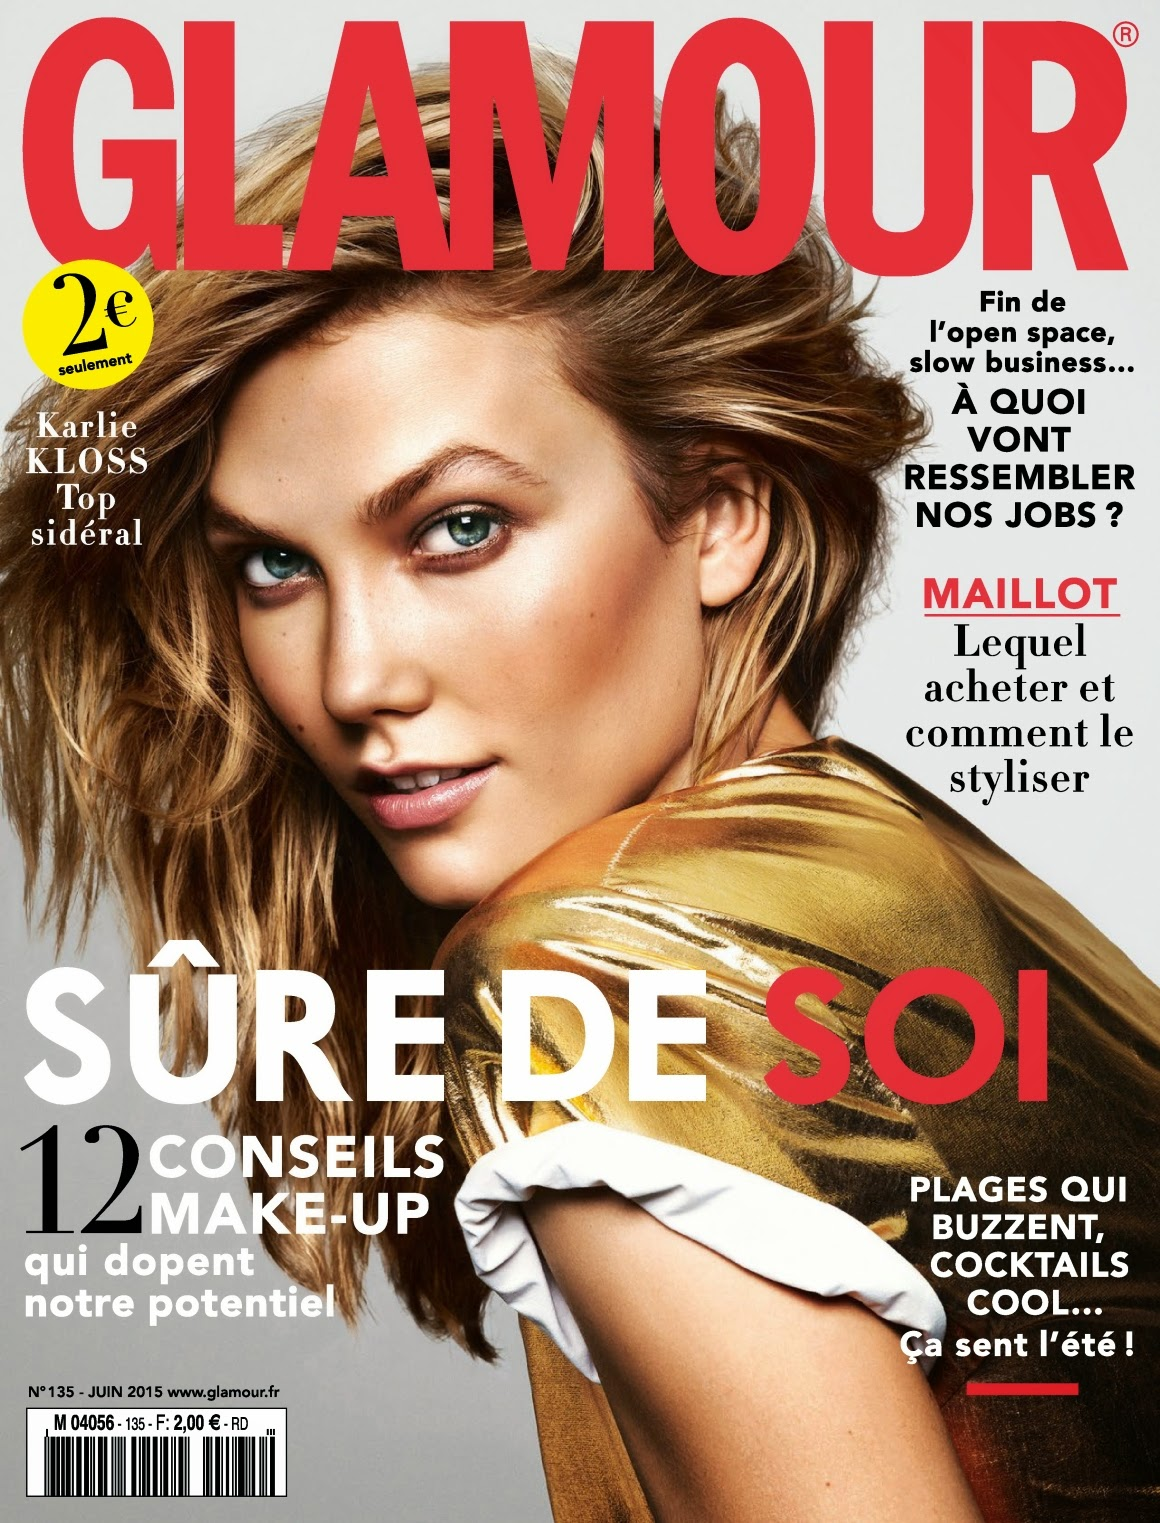 Karlie-Kloss-by-alique-glamour-france-june-2015-